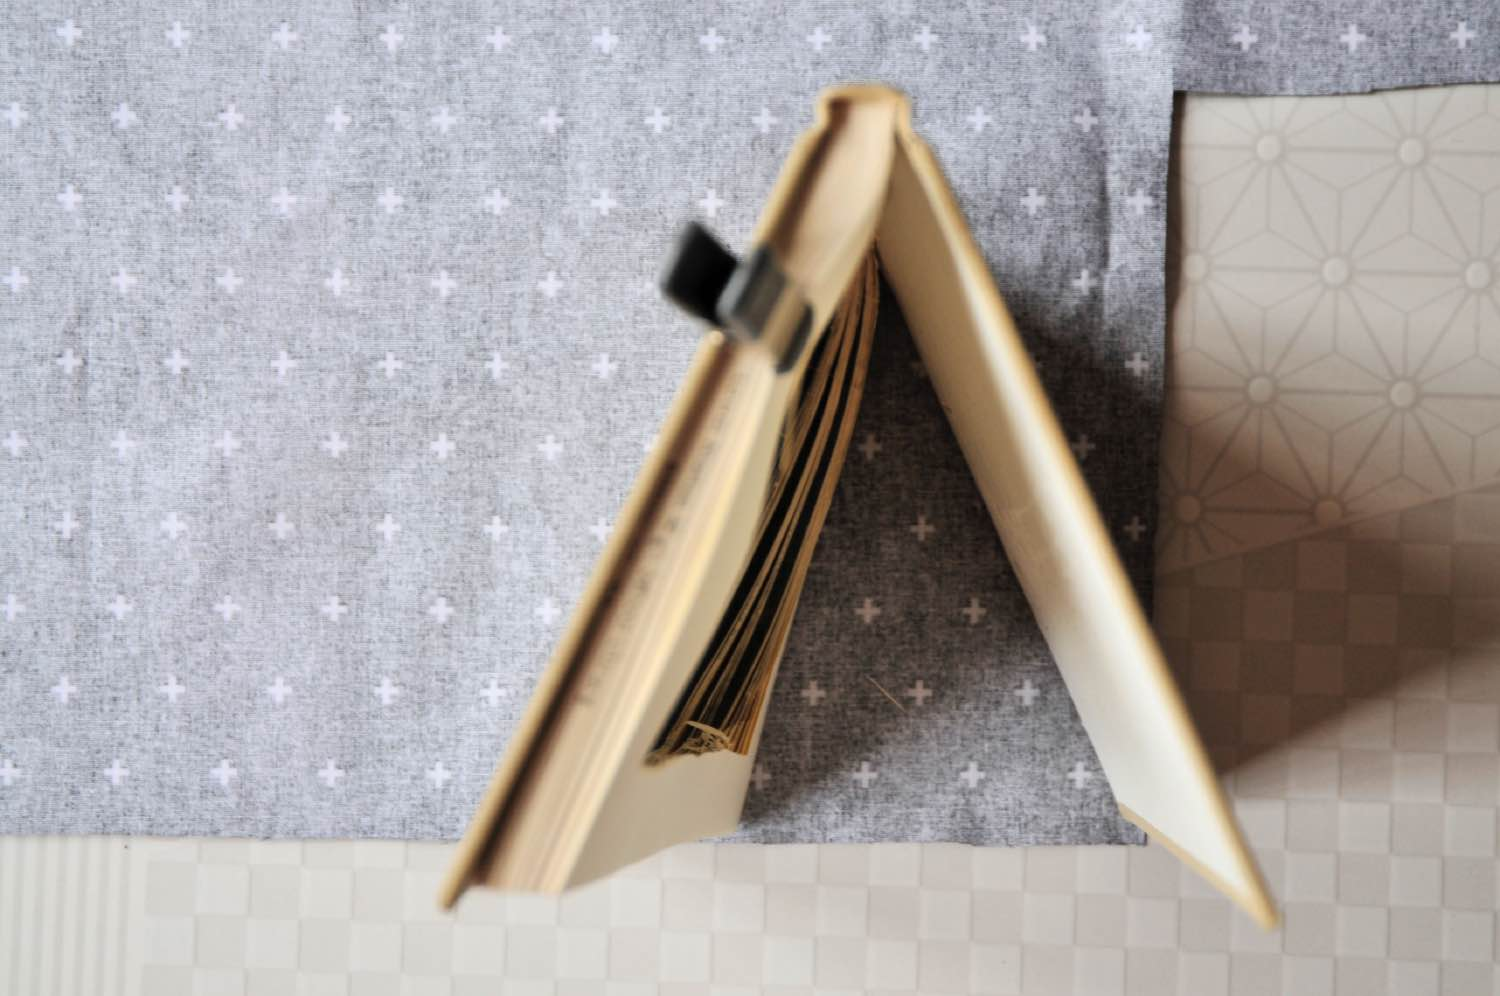 make the edges of the book clutch purse diy